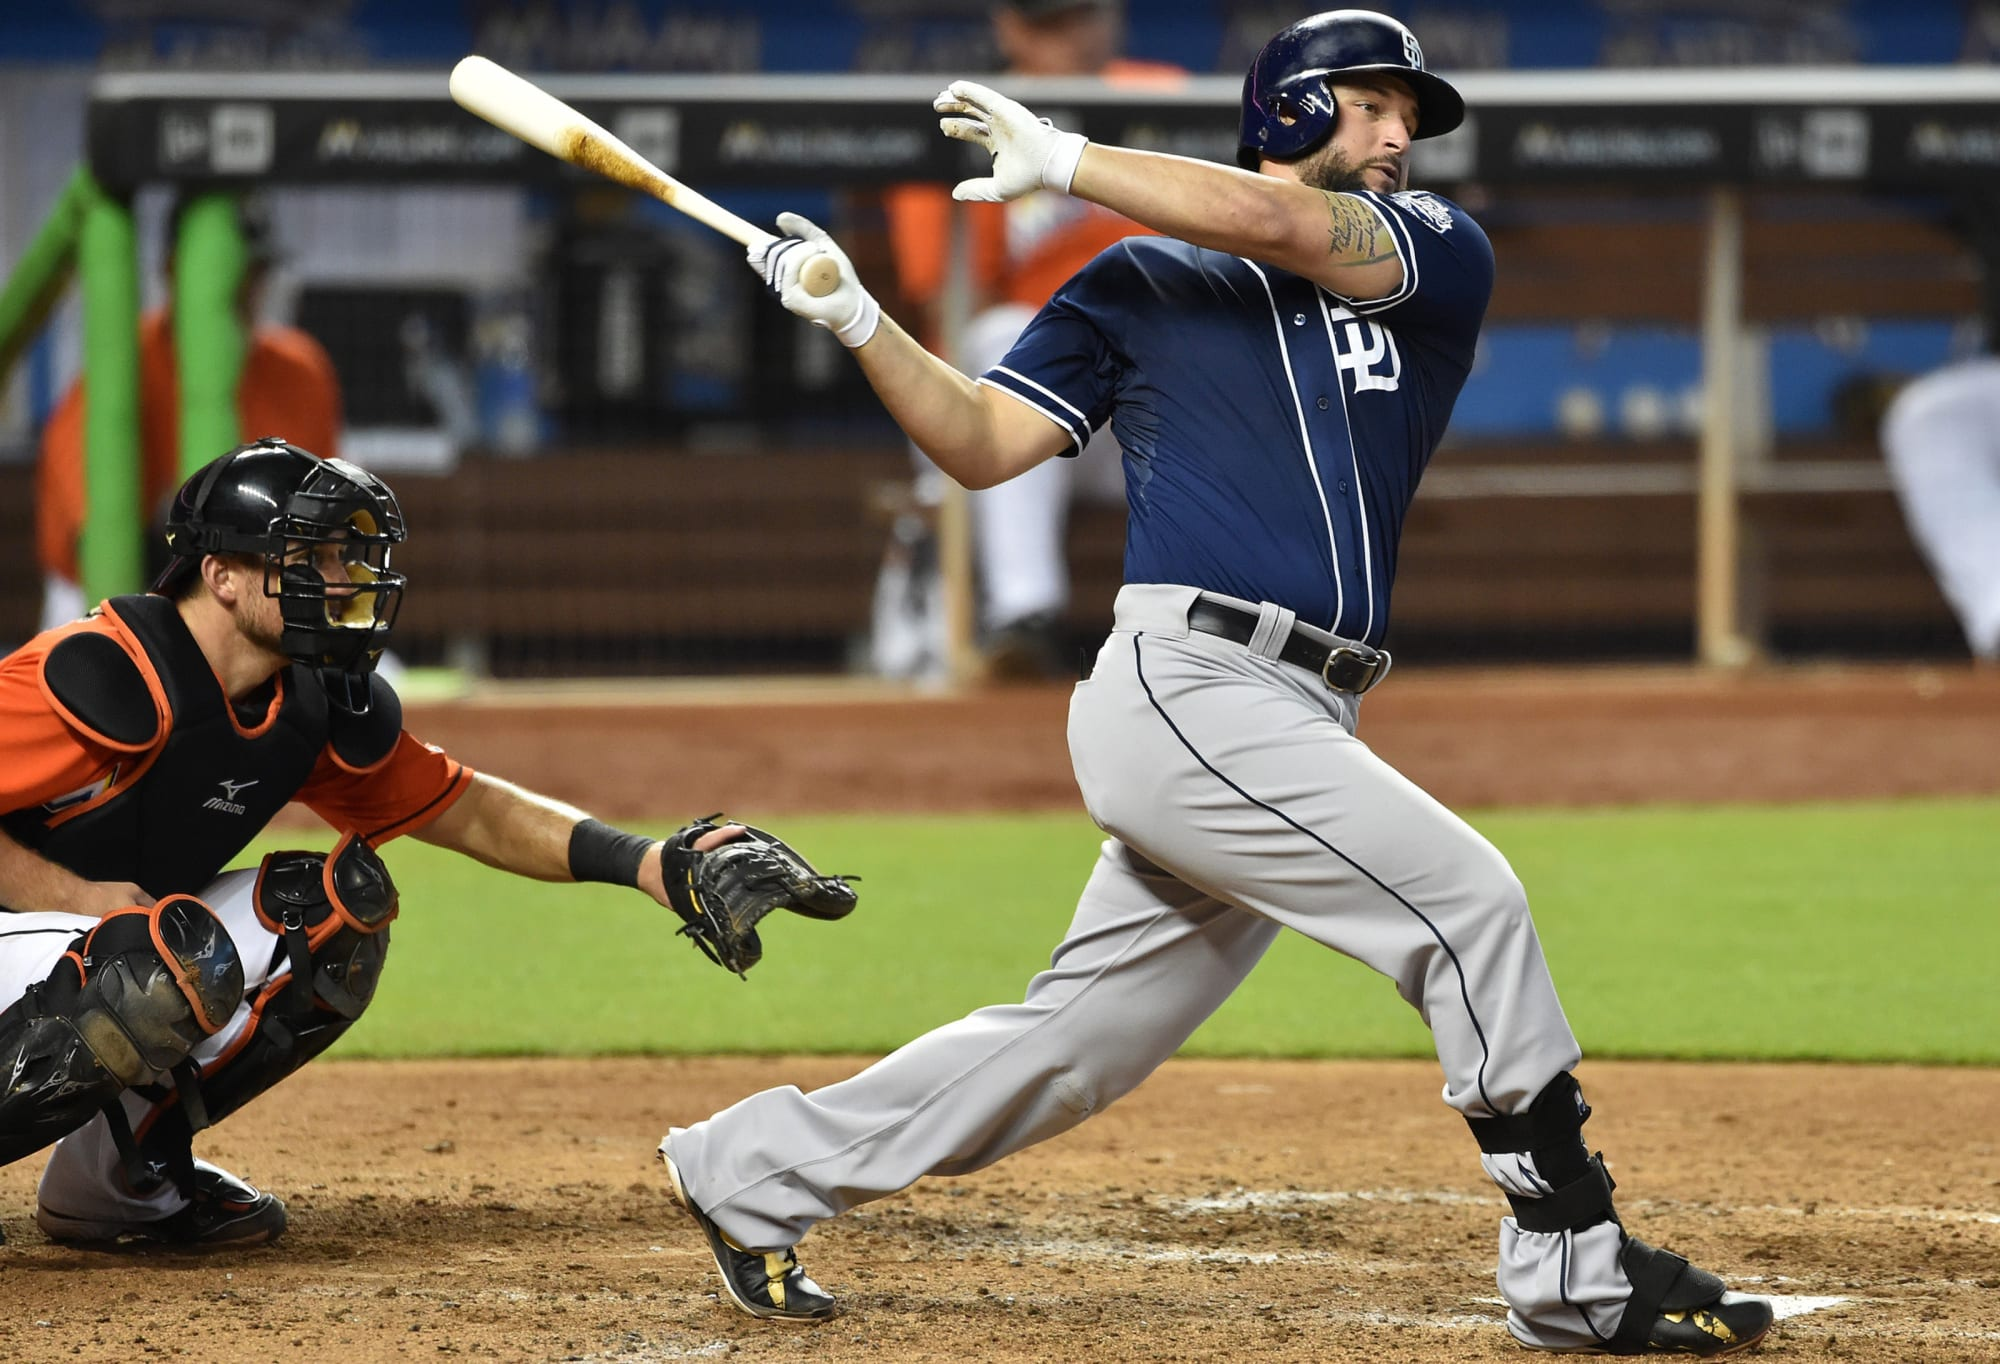 Padres Rumors: Yonder Alonso's Instagram post signals he's back